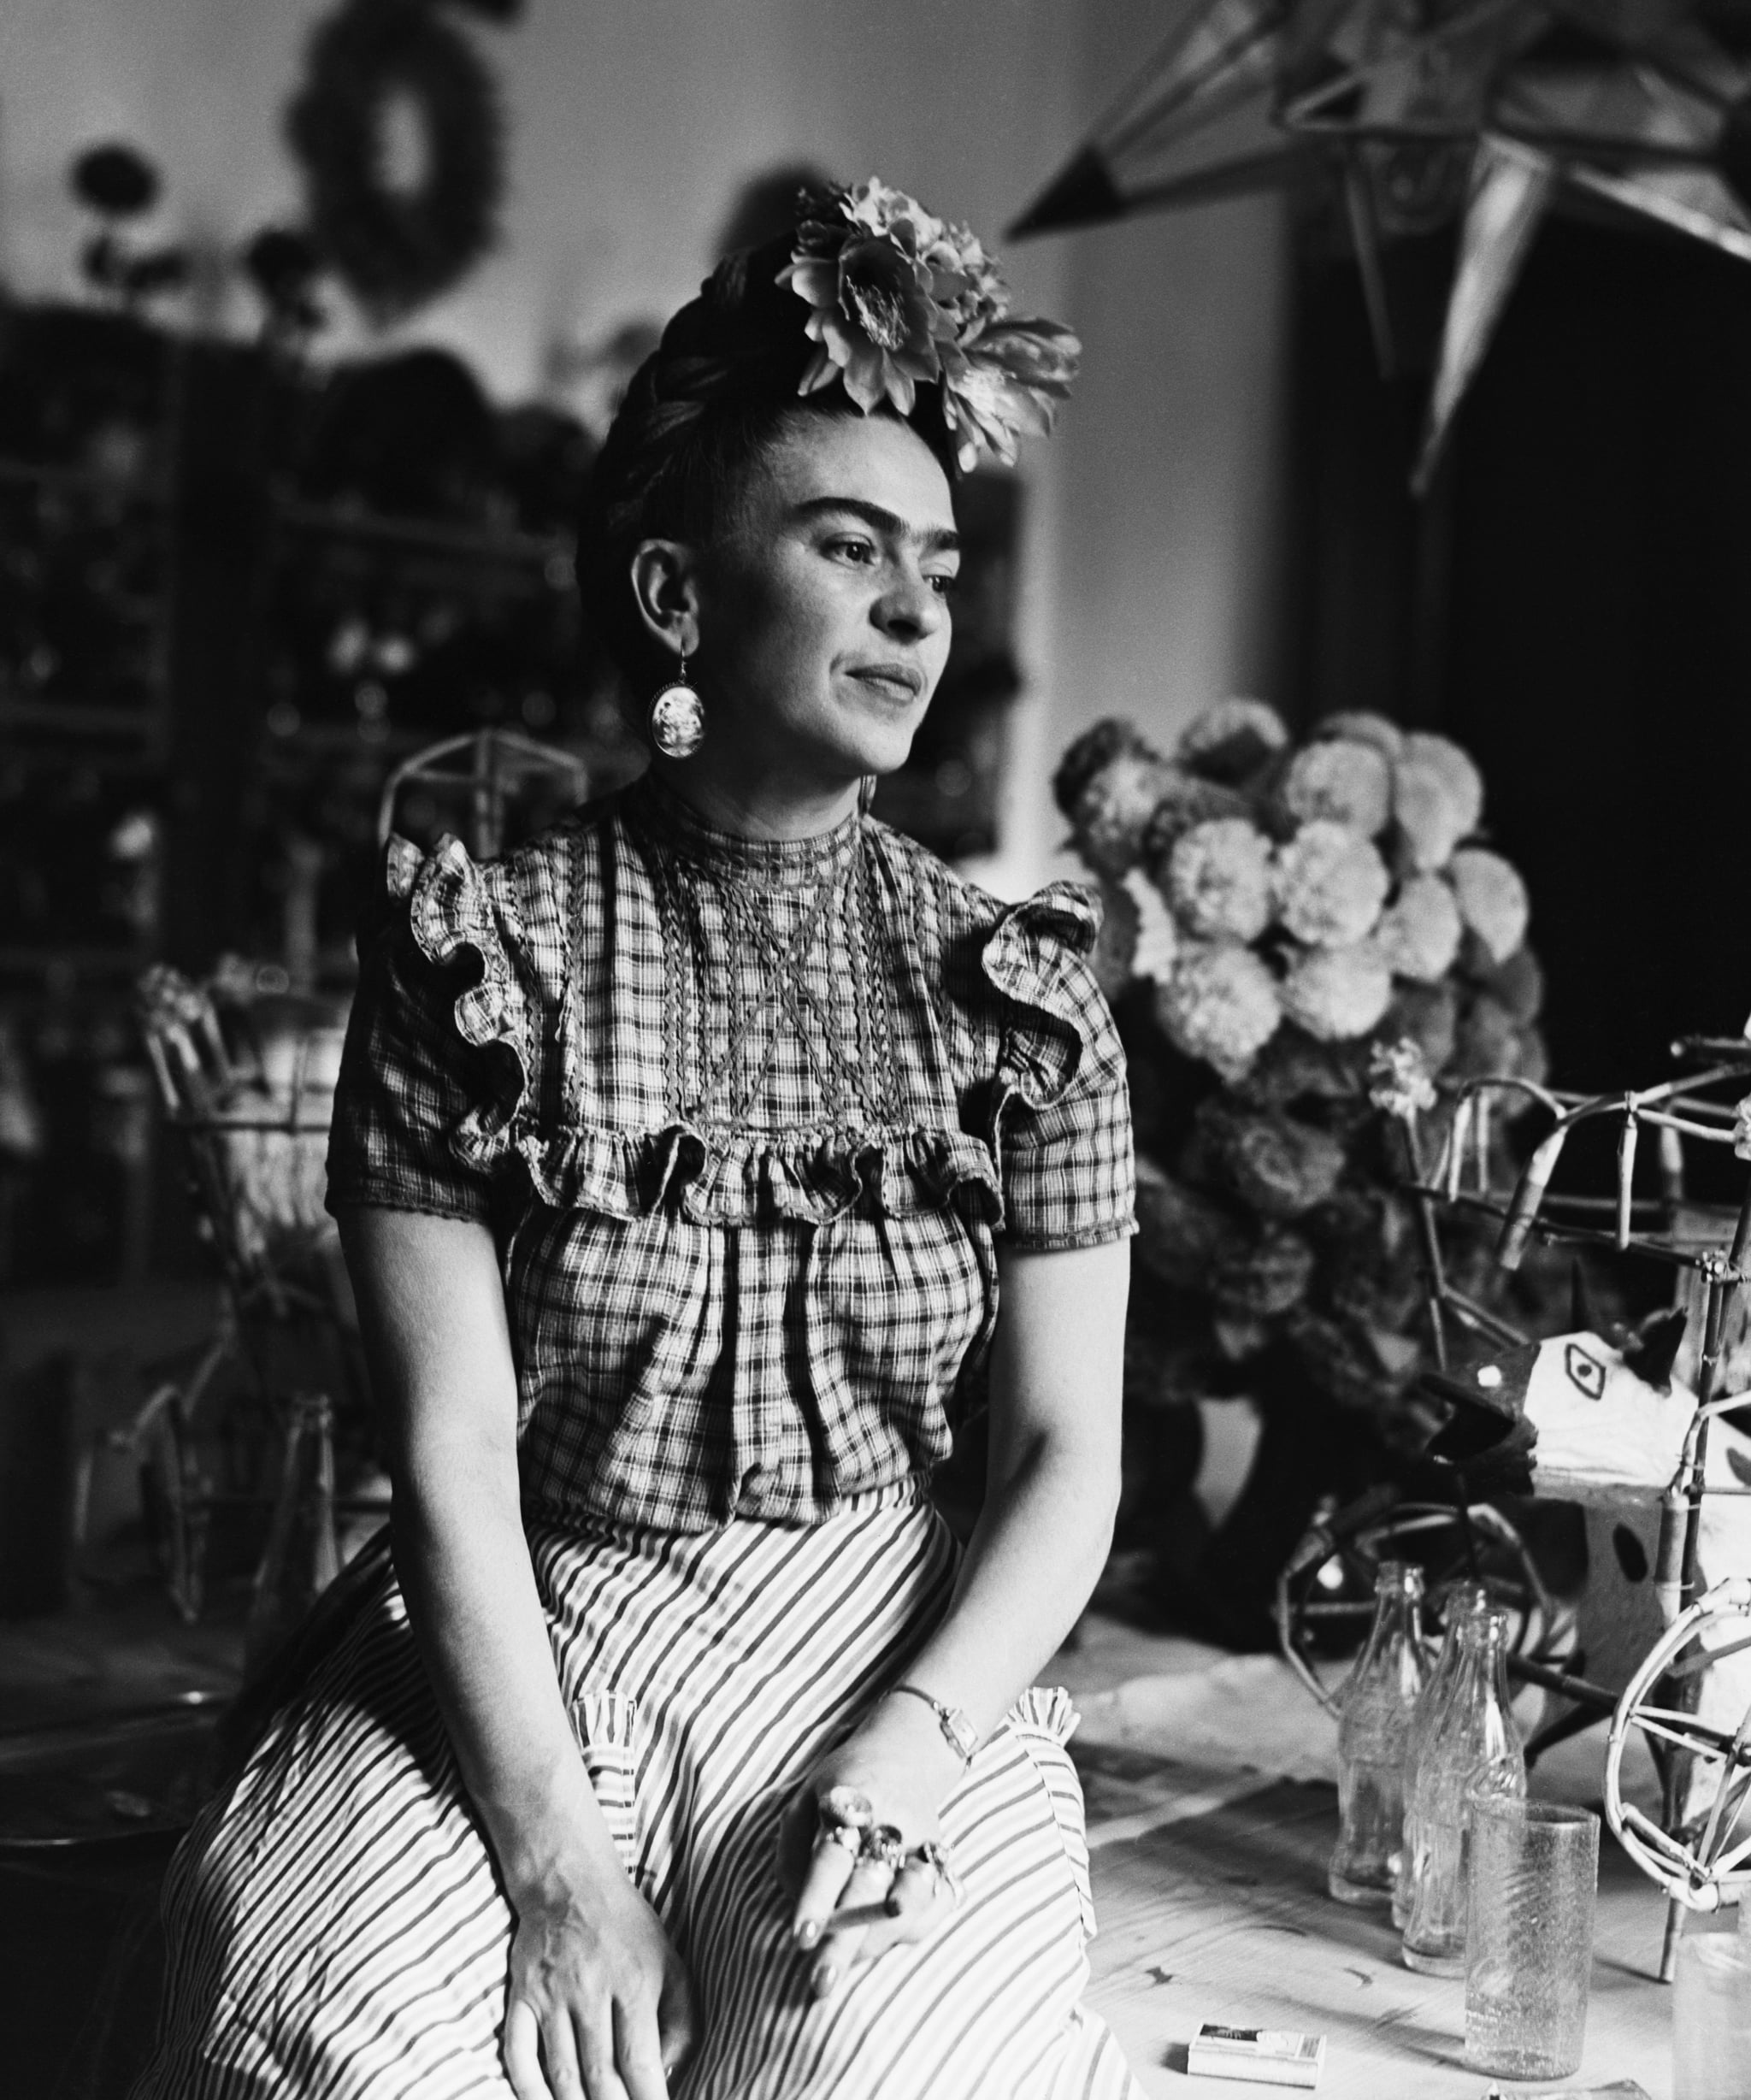 (Original Caption) 1944: Photograph of Frida Kahlo (1910-1954), Mexican painter and wife of Diego Rivera.